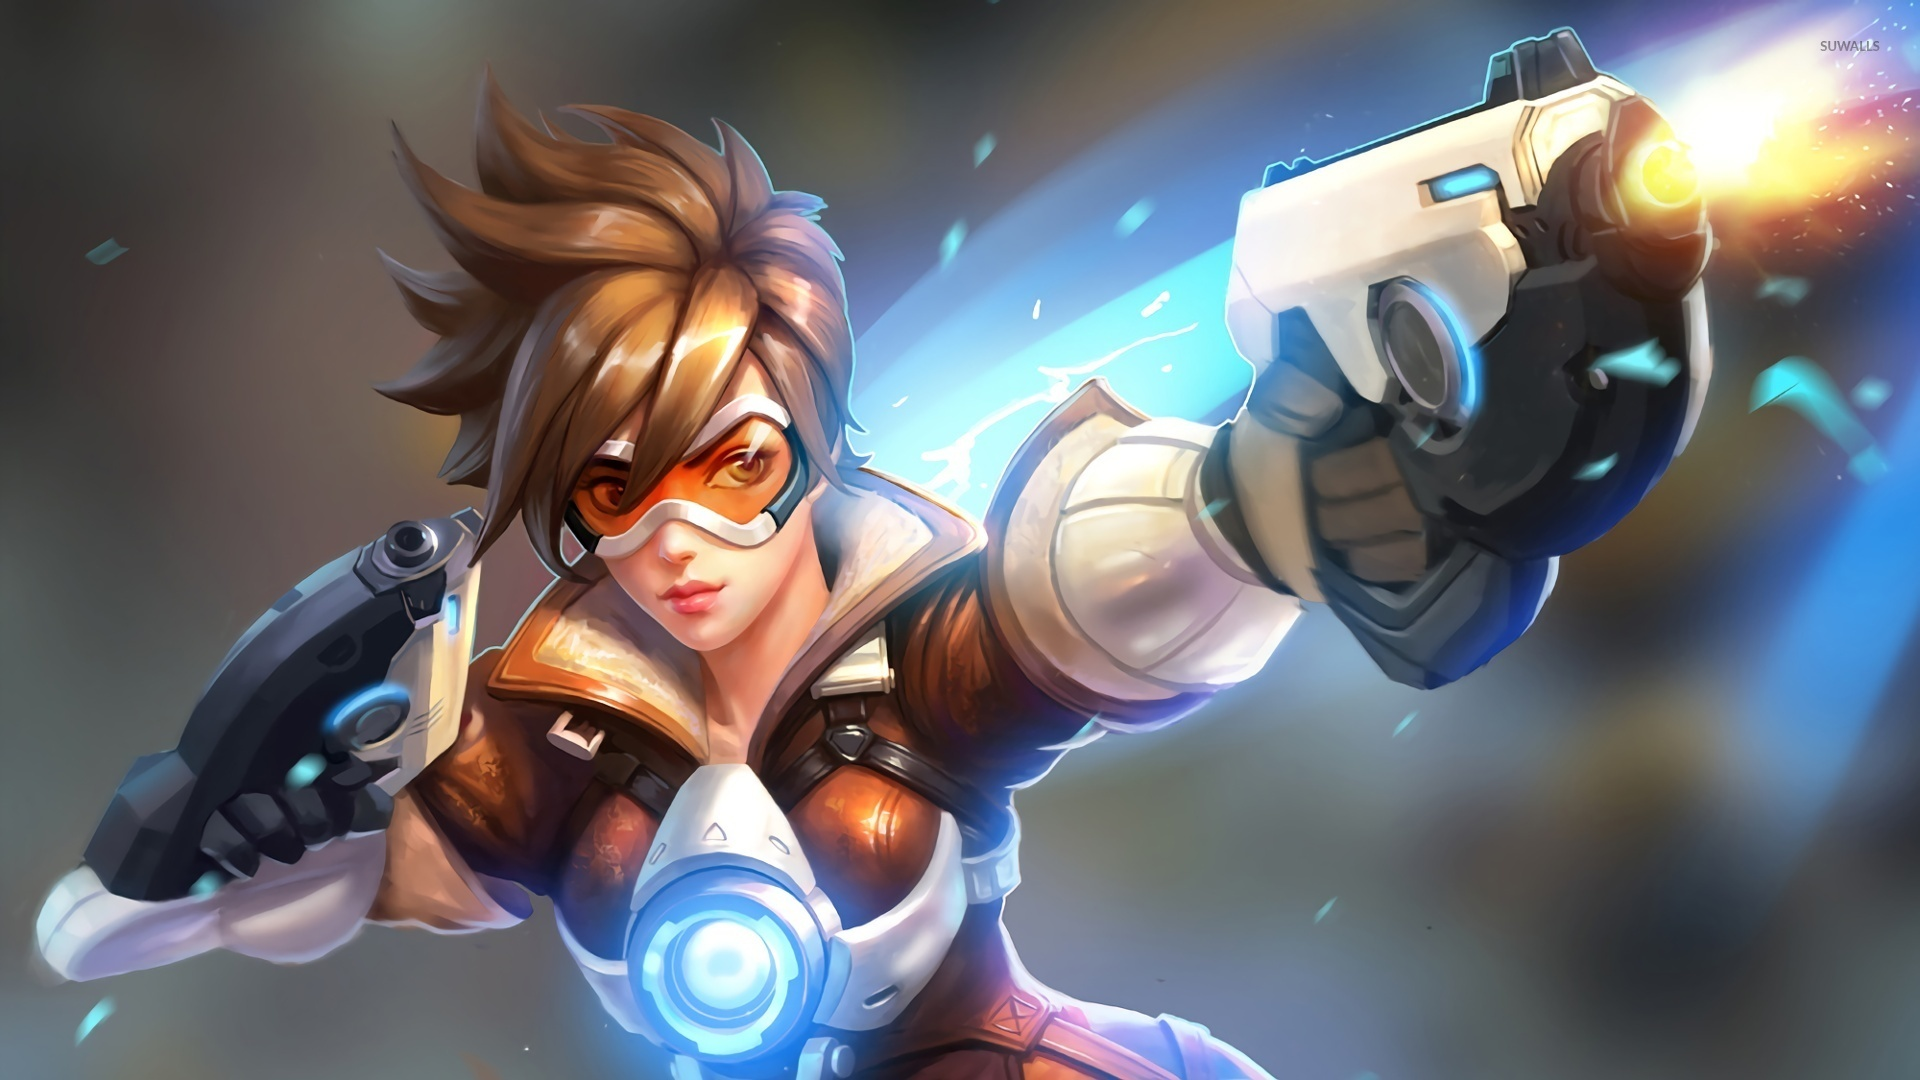 Tracer Overwatch Wallpaper Overwatch Tracer 84711